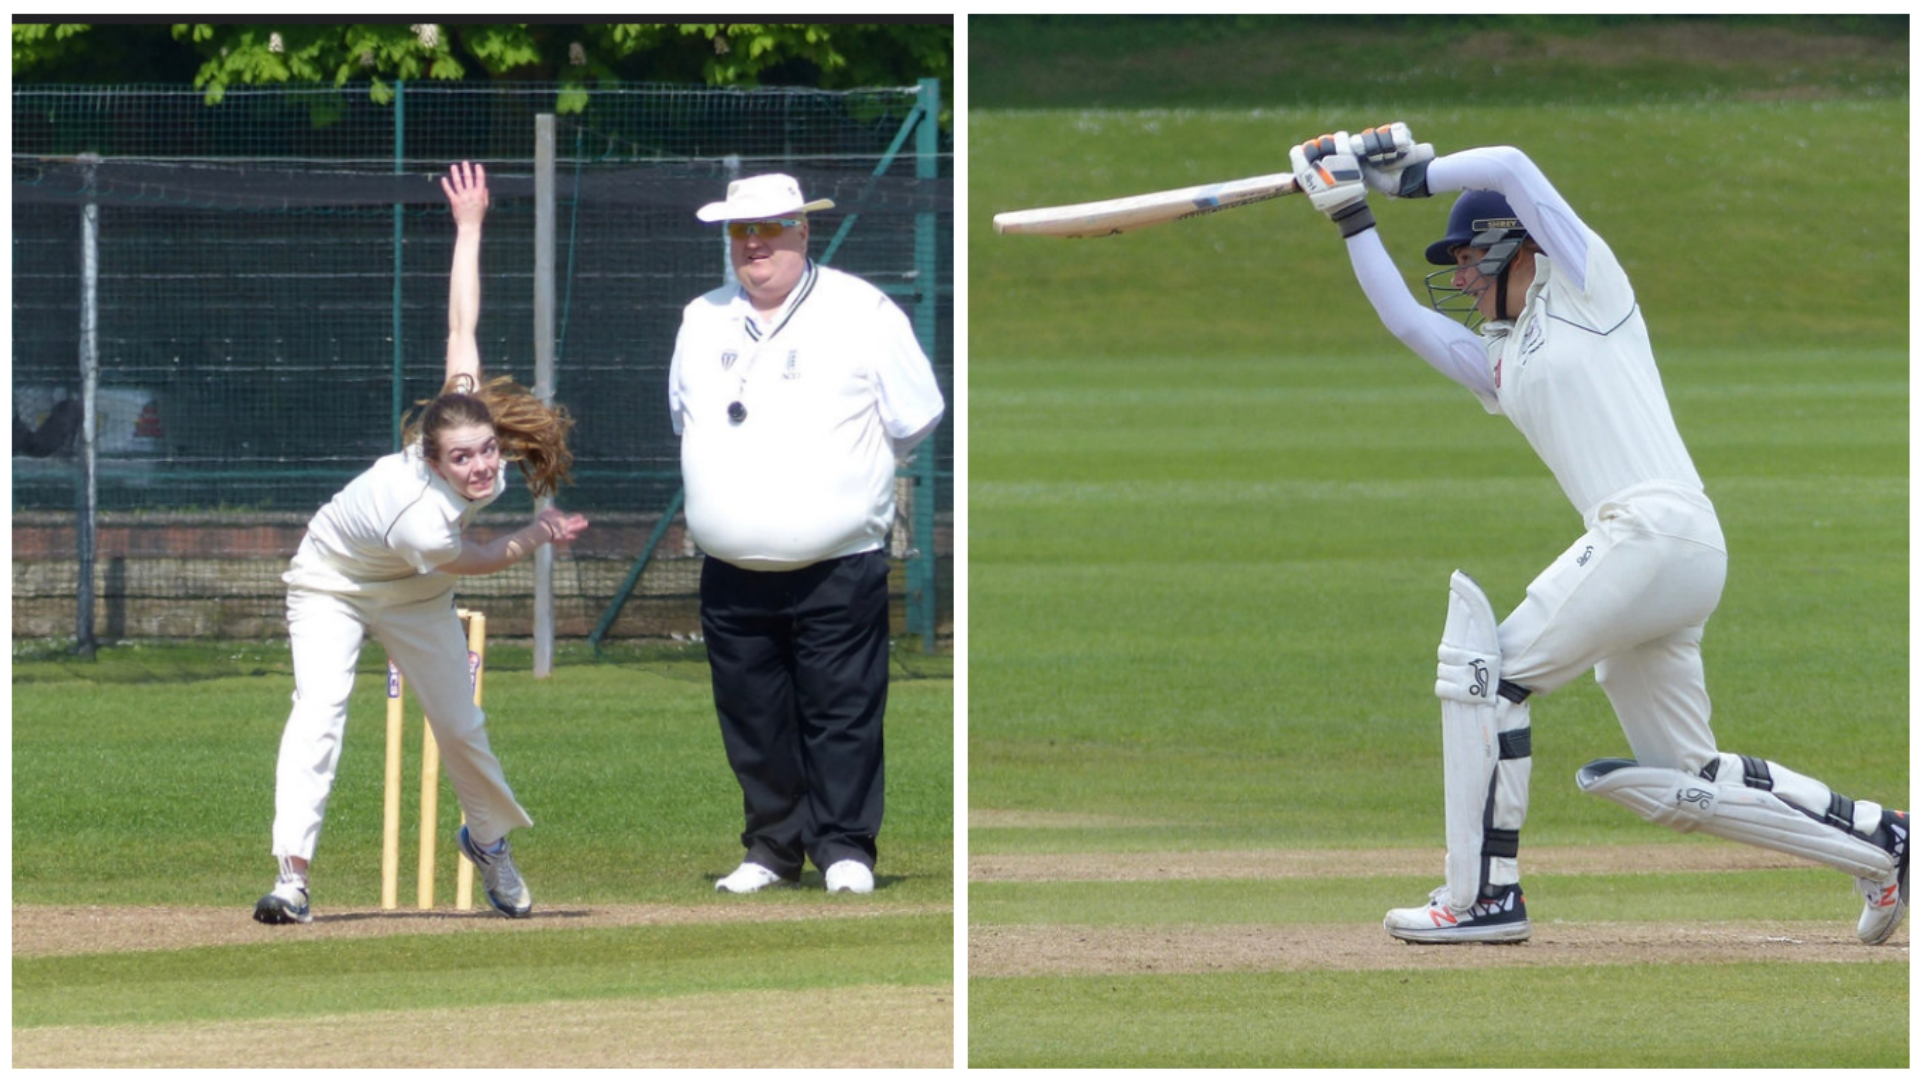 County women and girls match reports – week ending May 7